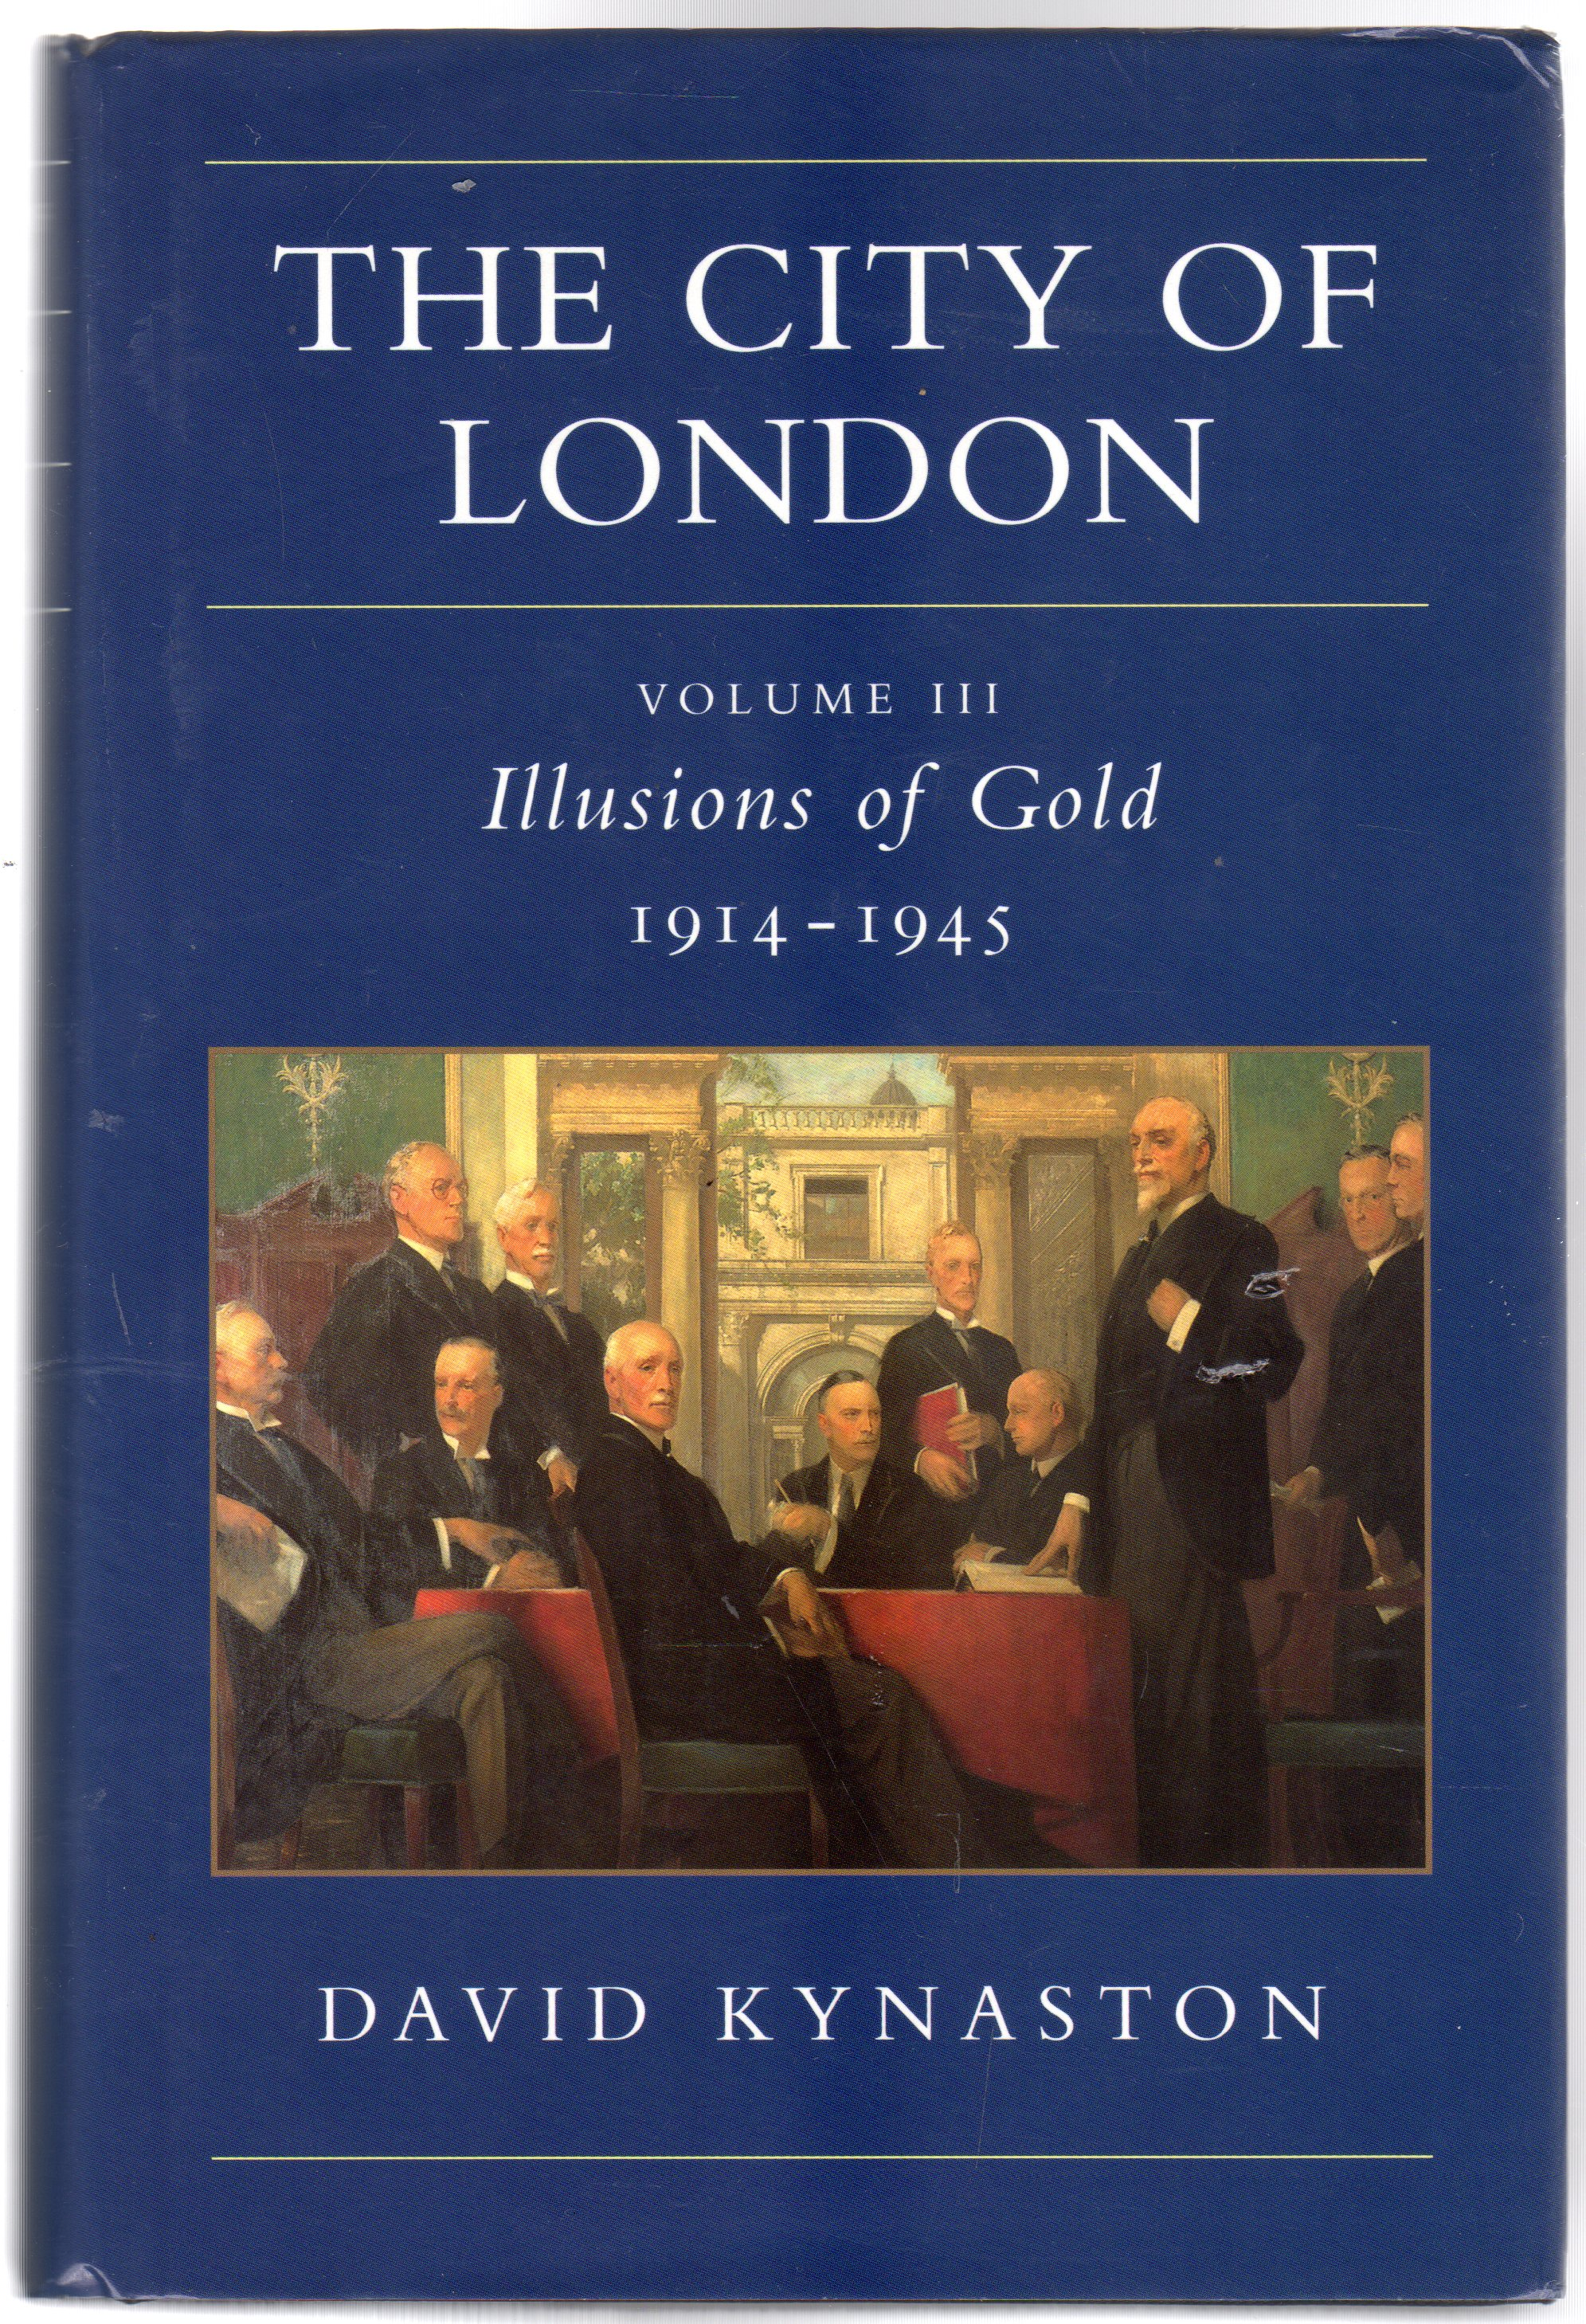 Image for The City of London : Volume III - Illusions of Gold